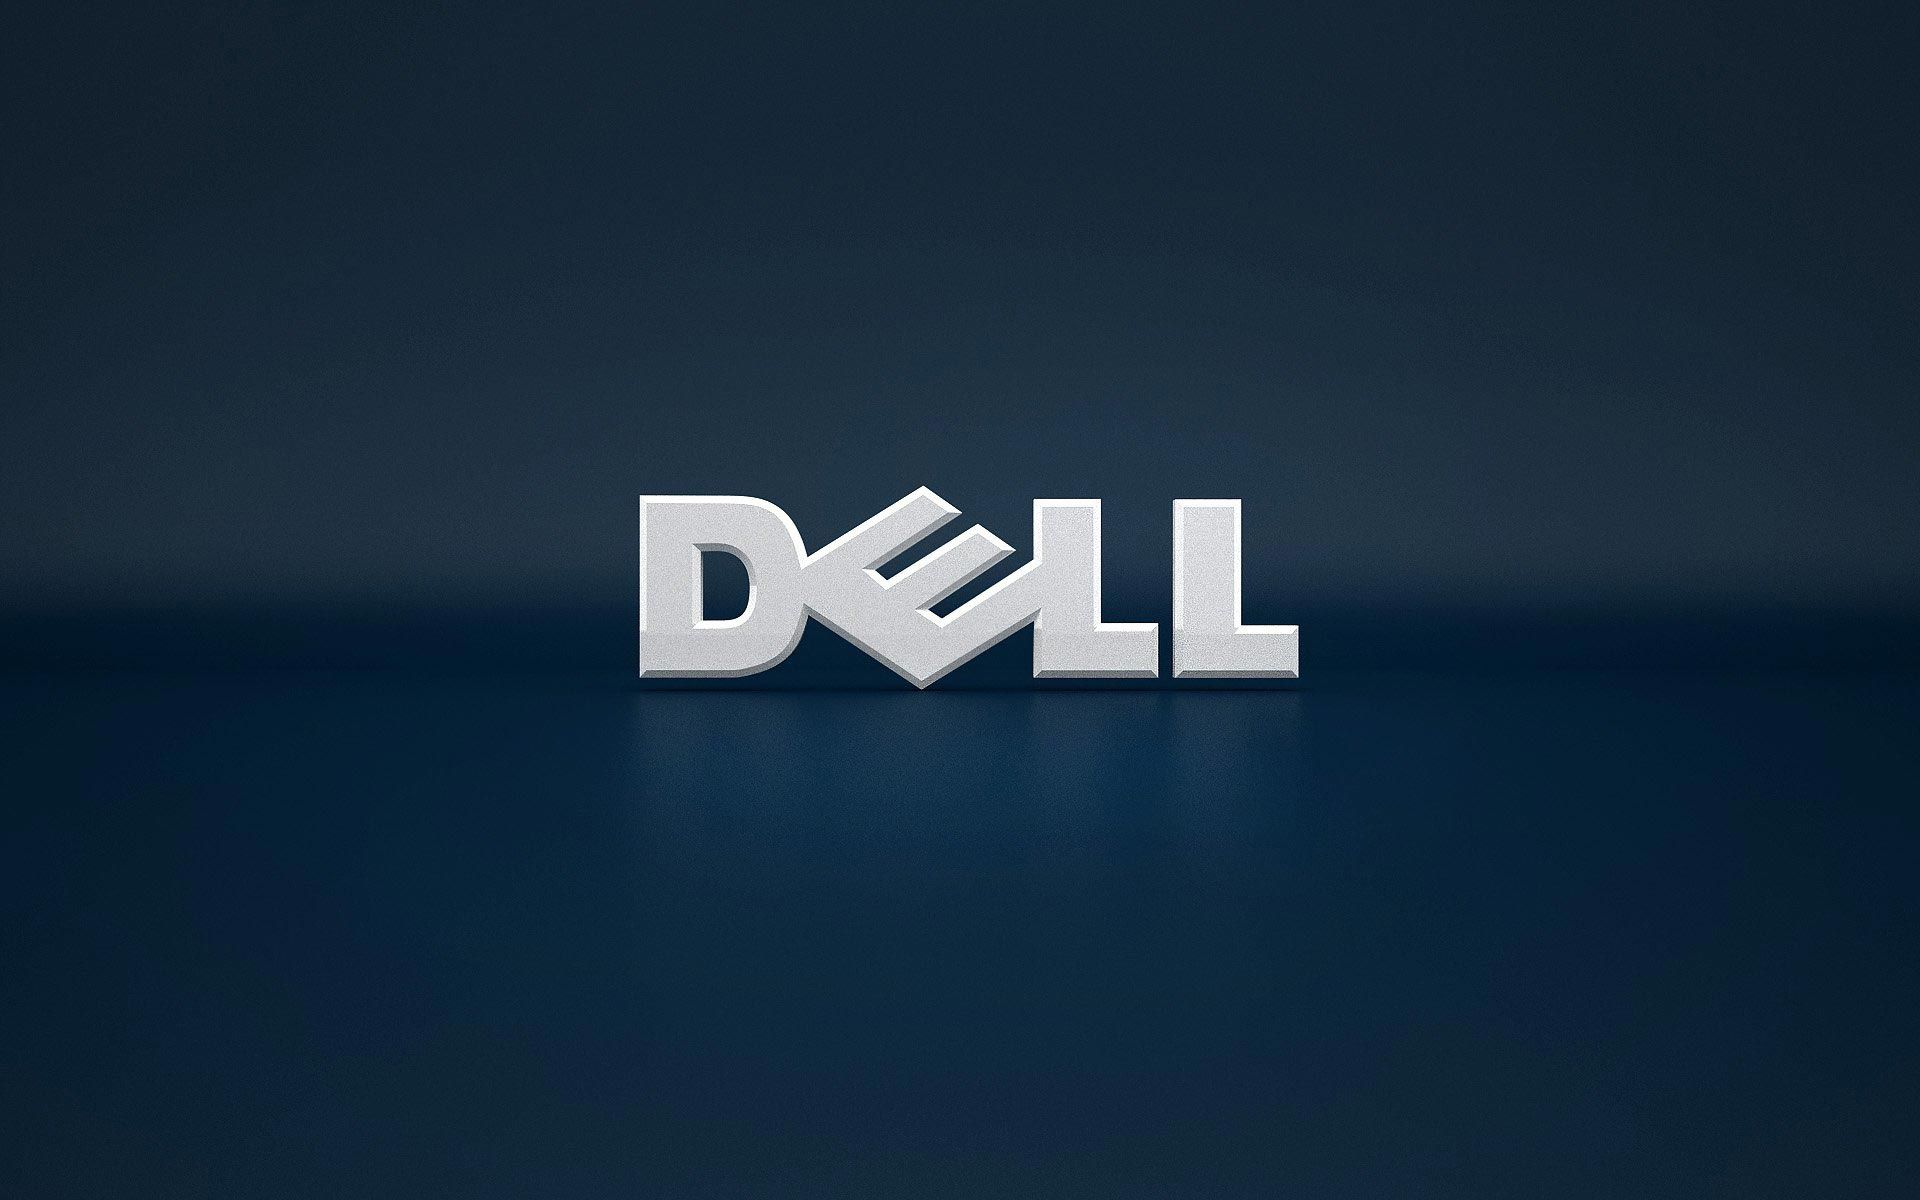 Dell Logo Hd Backgrounds Wallpaper Dell Logo Hd Wallpapers For